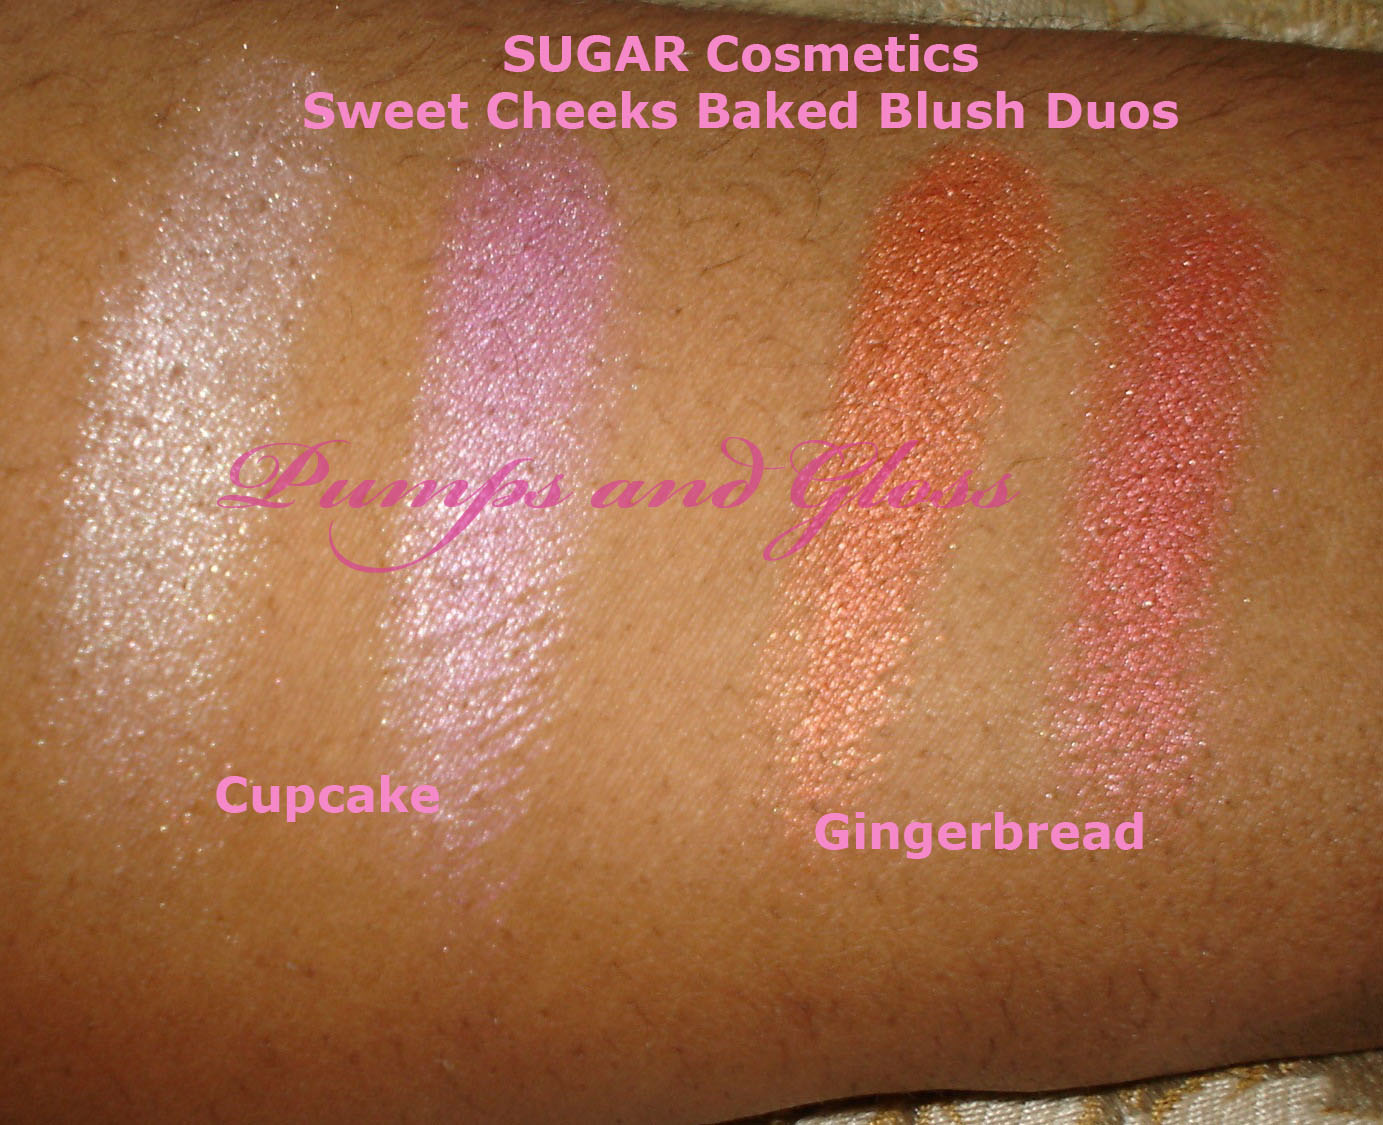 SUGAR Cosmetics Sweet Cheeks Baked Blush Duos - Cupcake (l) and Gingerbread (r)